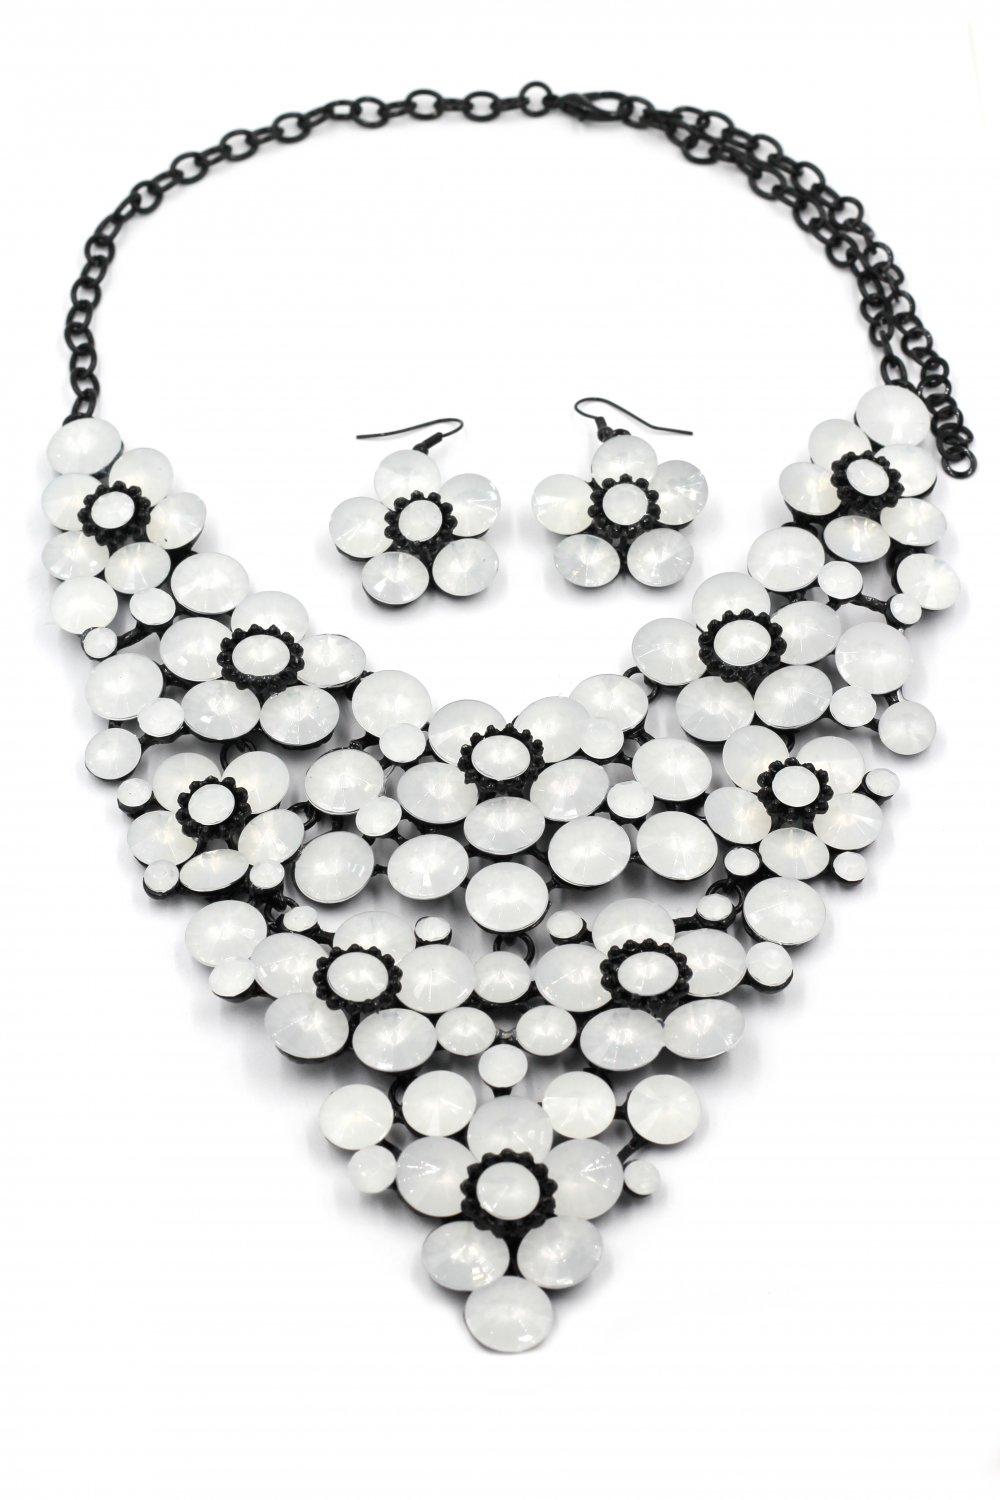 Milky crystal flowers necklace sets